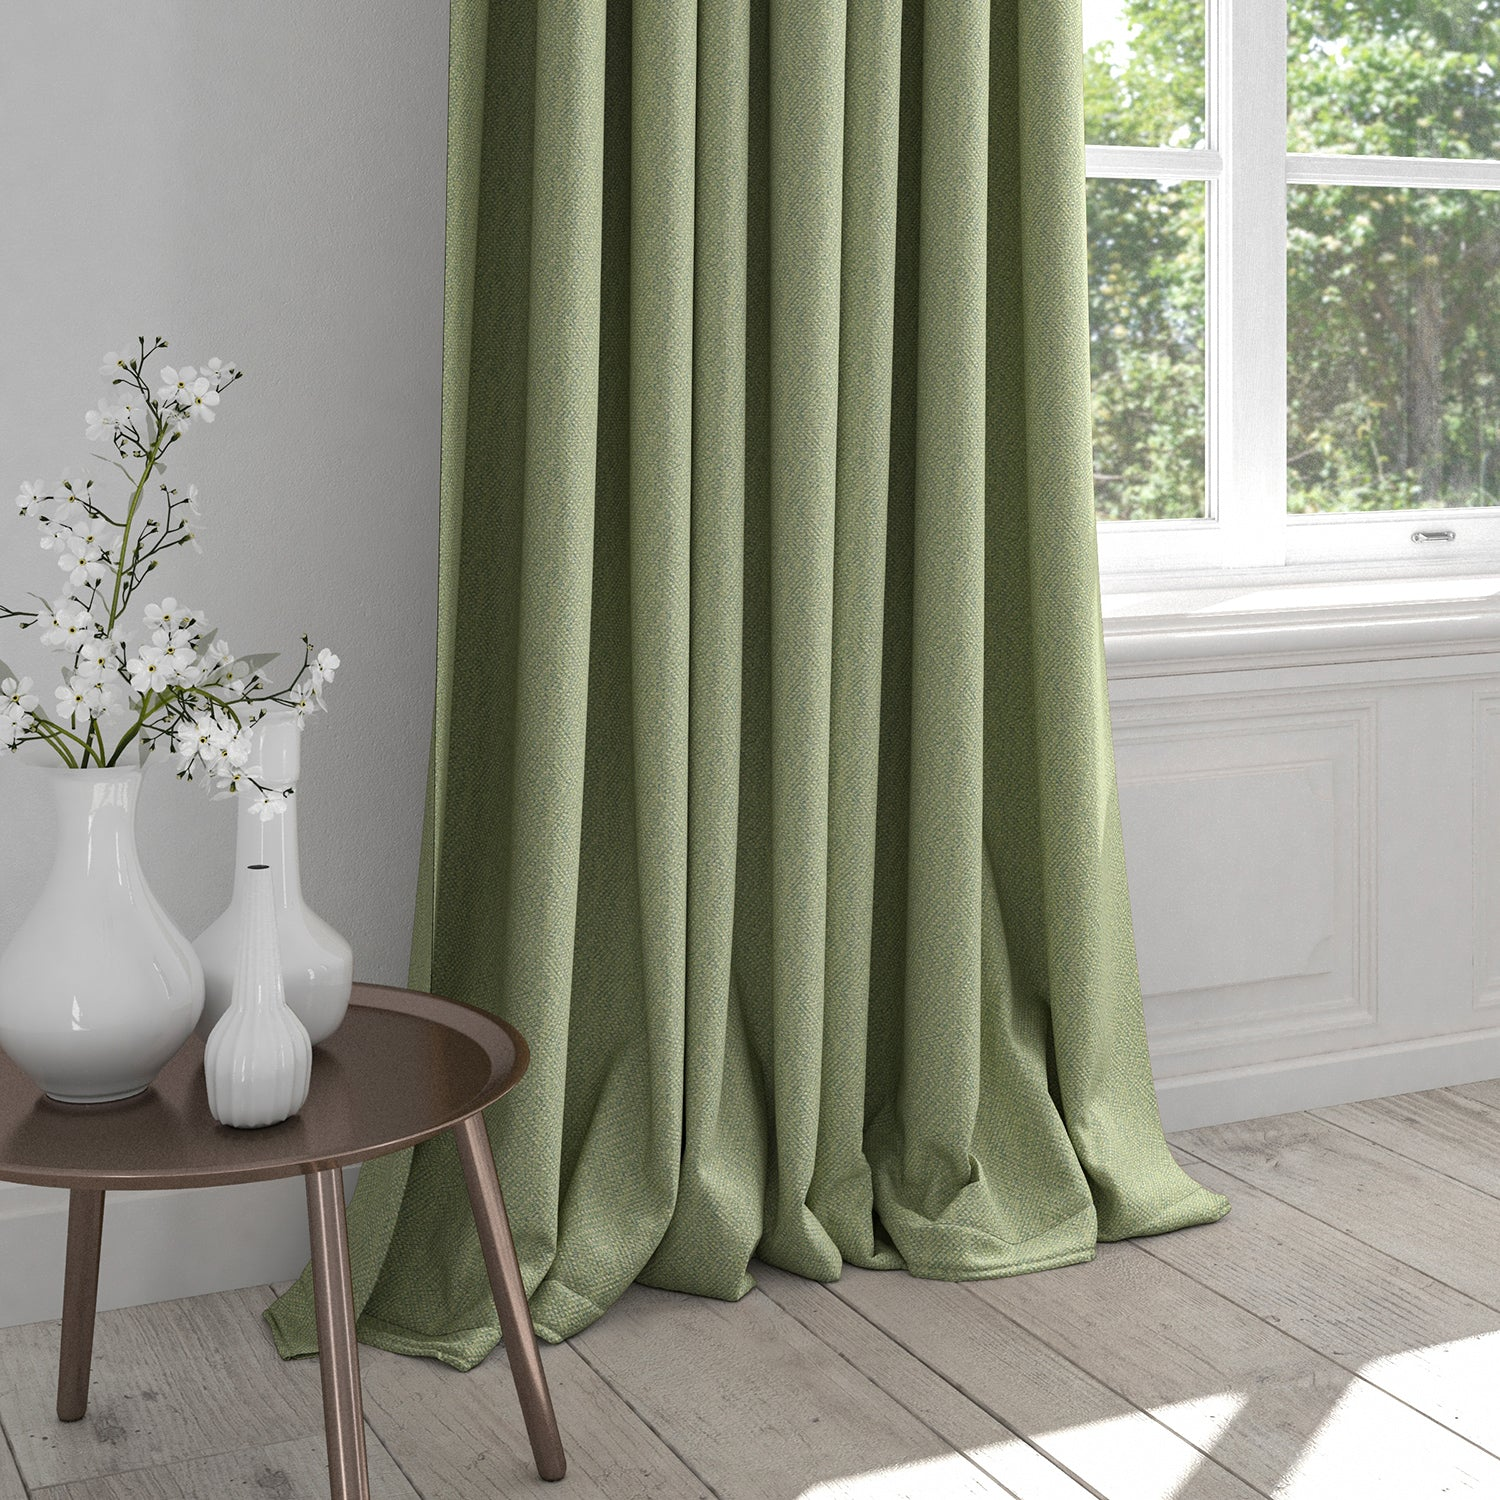 Curtain in a light green fabric with neutral woven geometric design